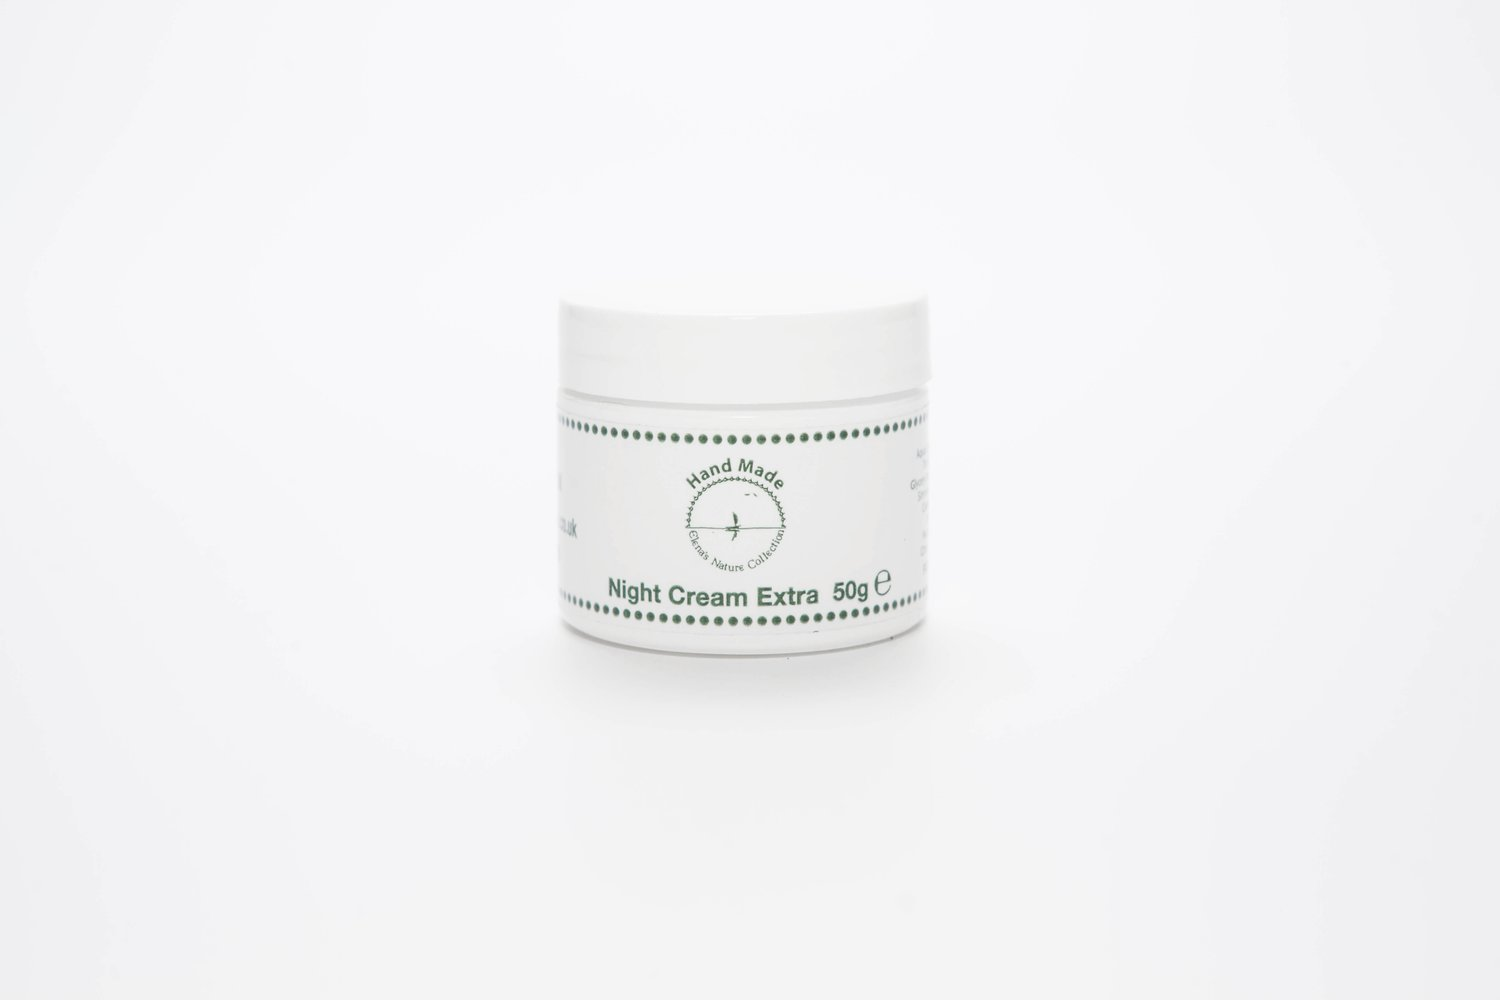 Night Cream Extra with calming geranium 50g